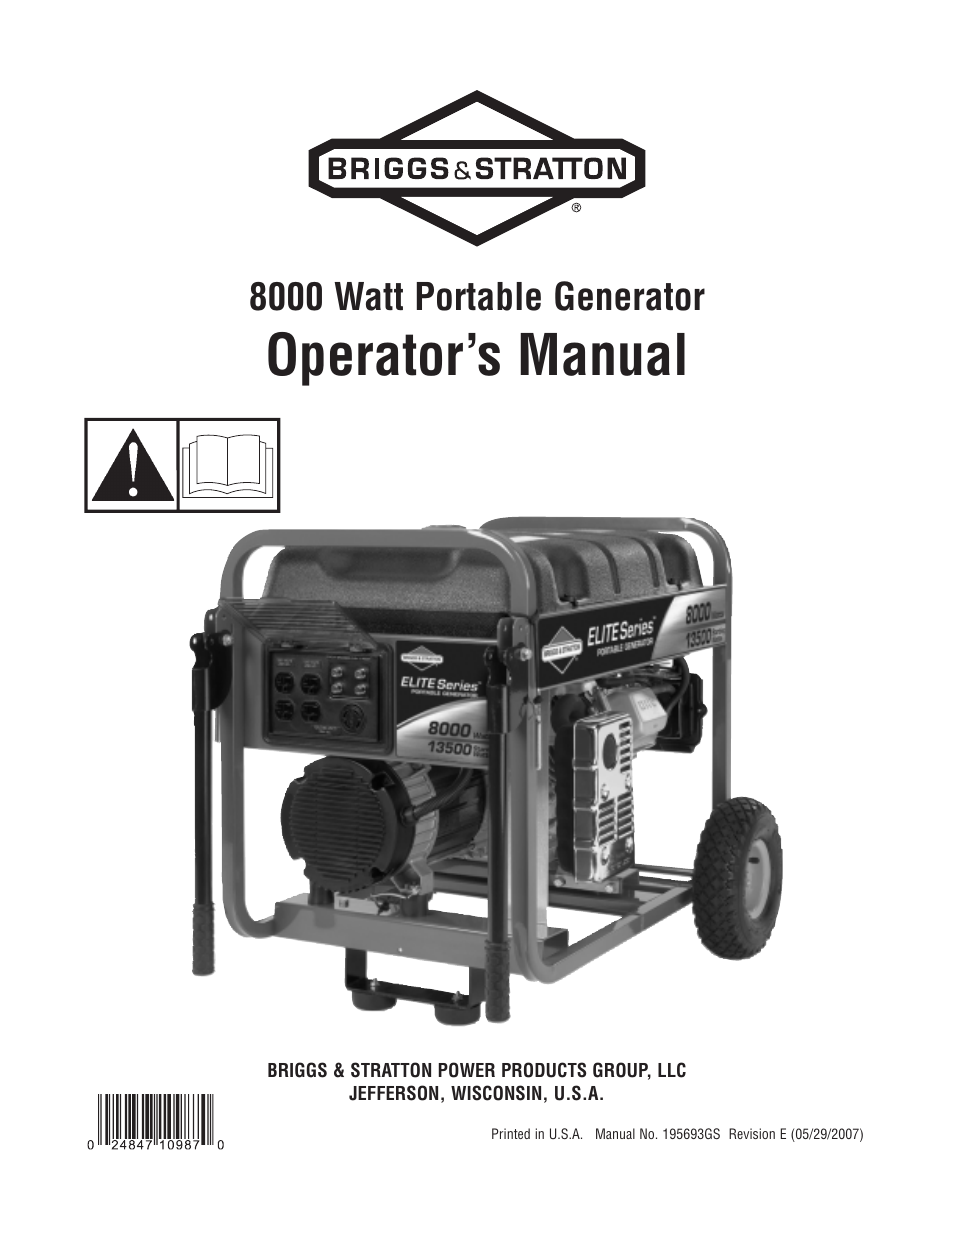 briggs stratton 8000 watt portable generator user manual 56 pages rh manualsdir com briggs & stratton 5000 watt portable generator manual briggs & stratton 5000 watt portable generator manual